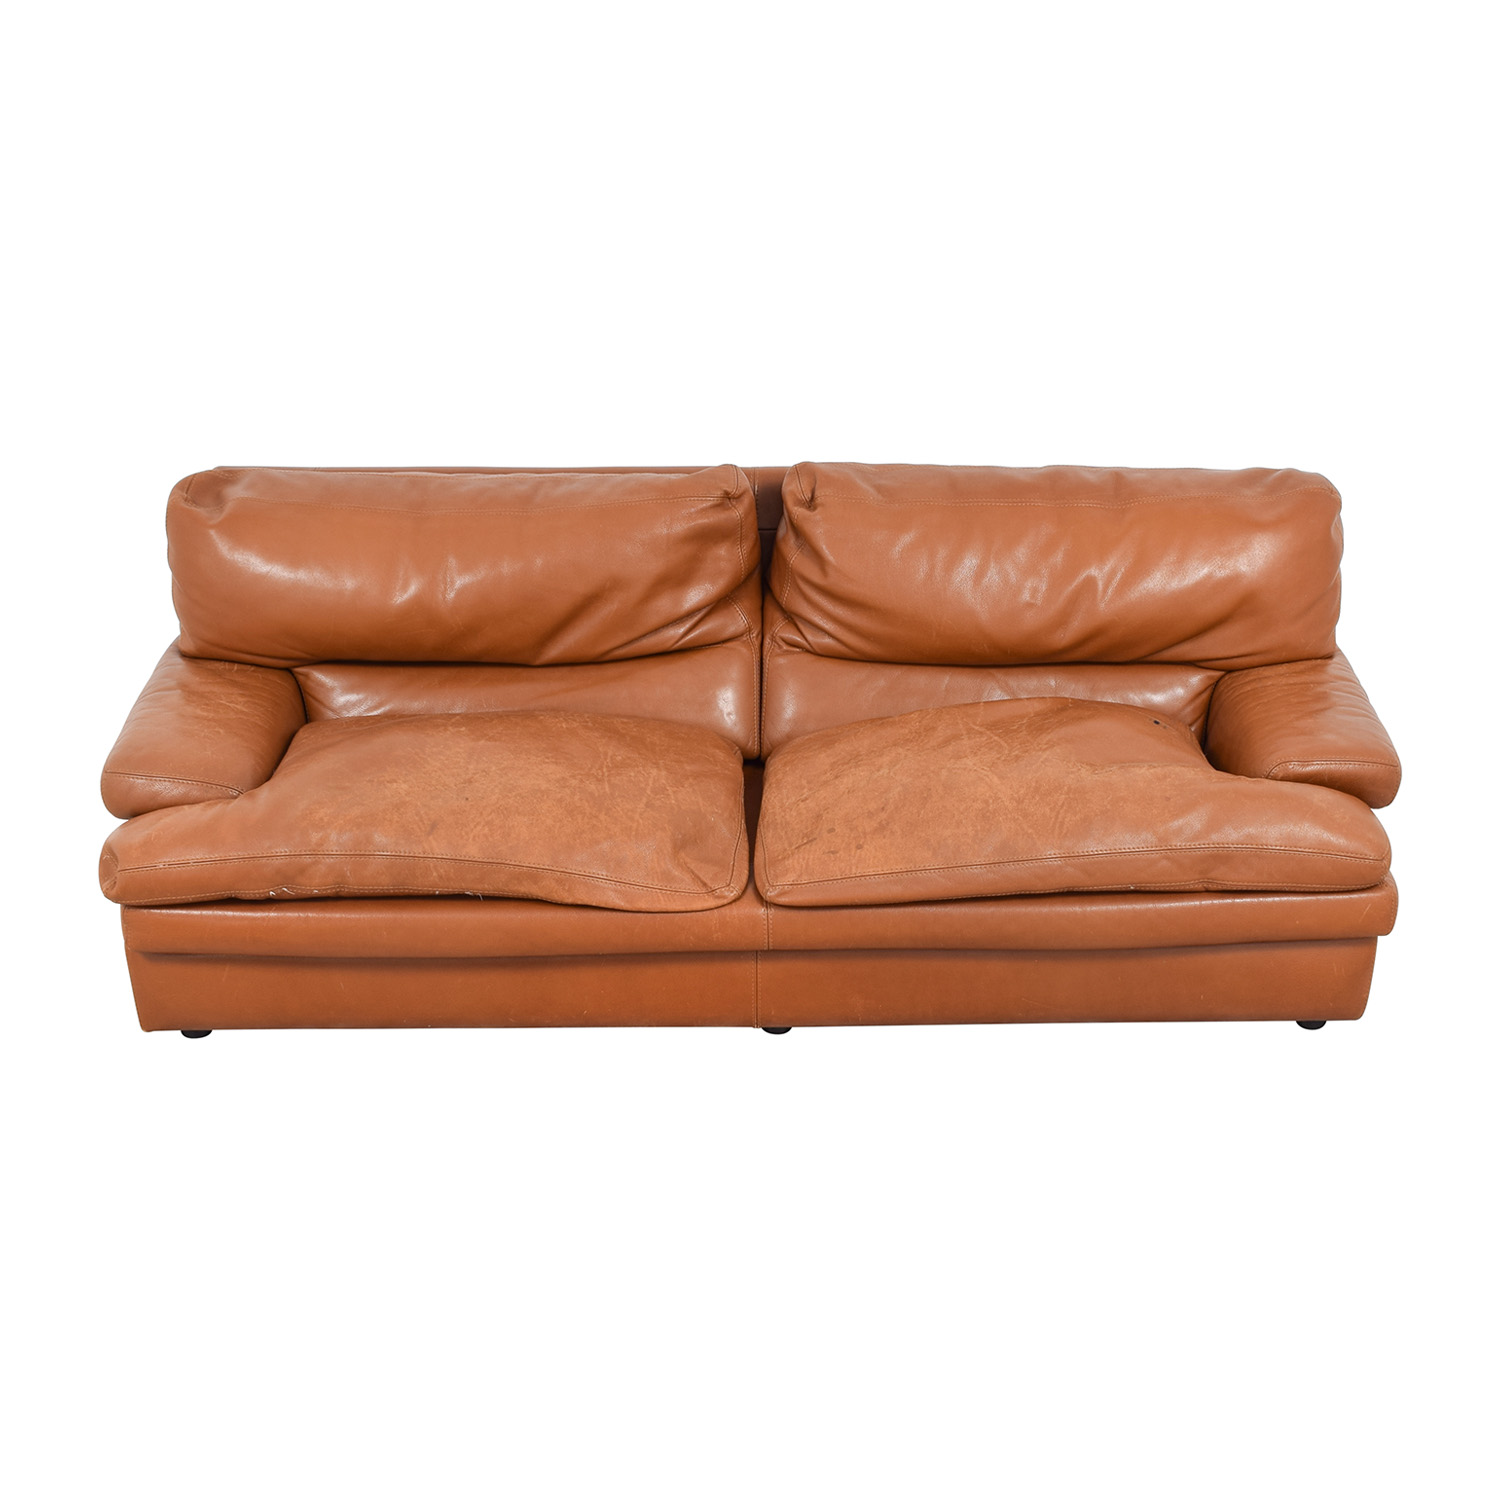 Roche Bobois Roche Bobois Burnt Orange Leather Sofa second hand